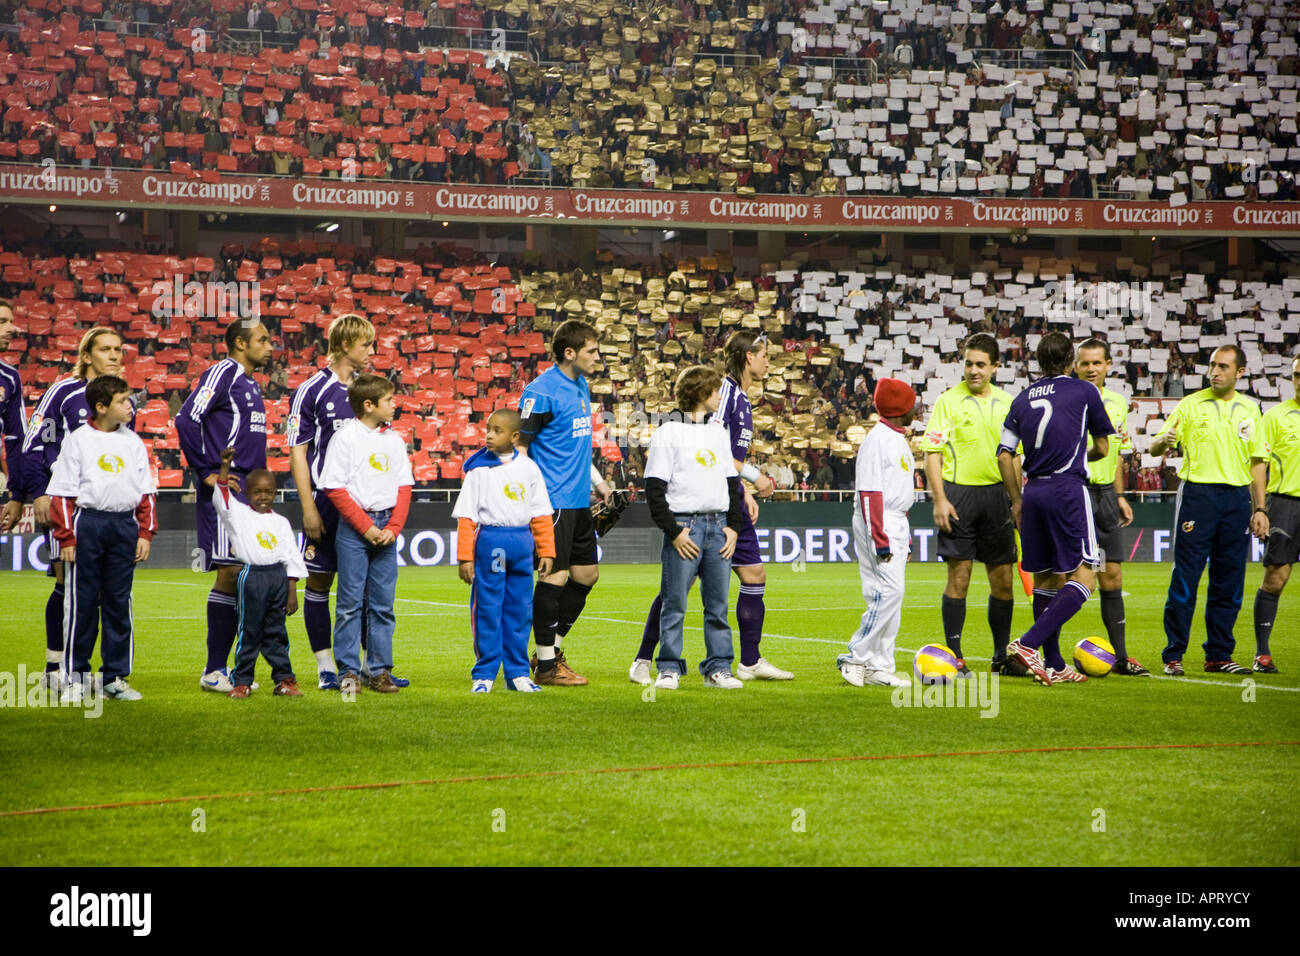 Real Madrid players forming with children before the game. - Stock Image